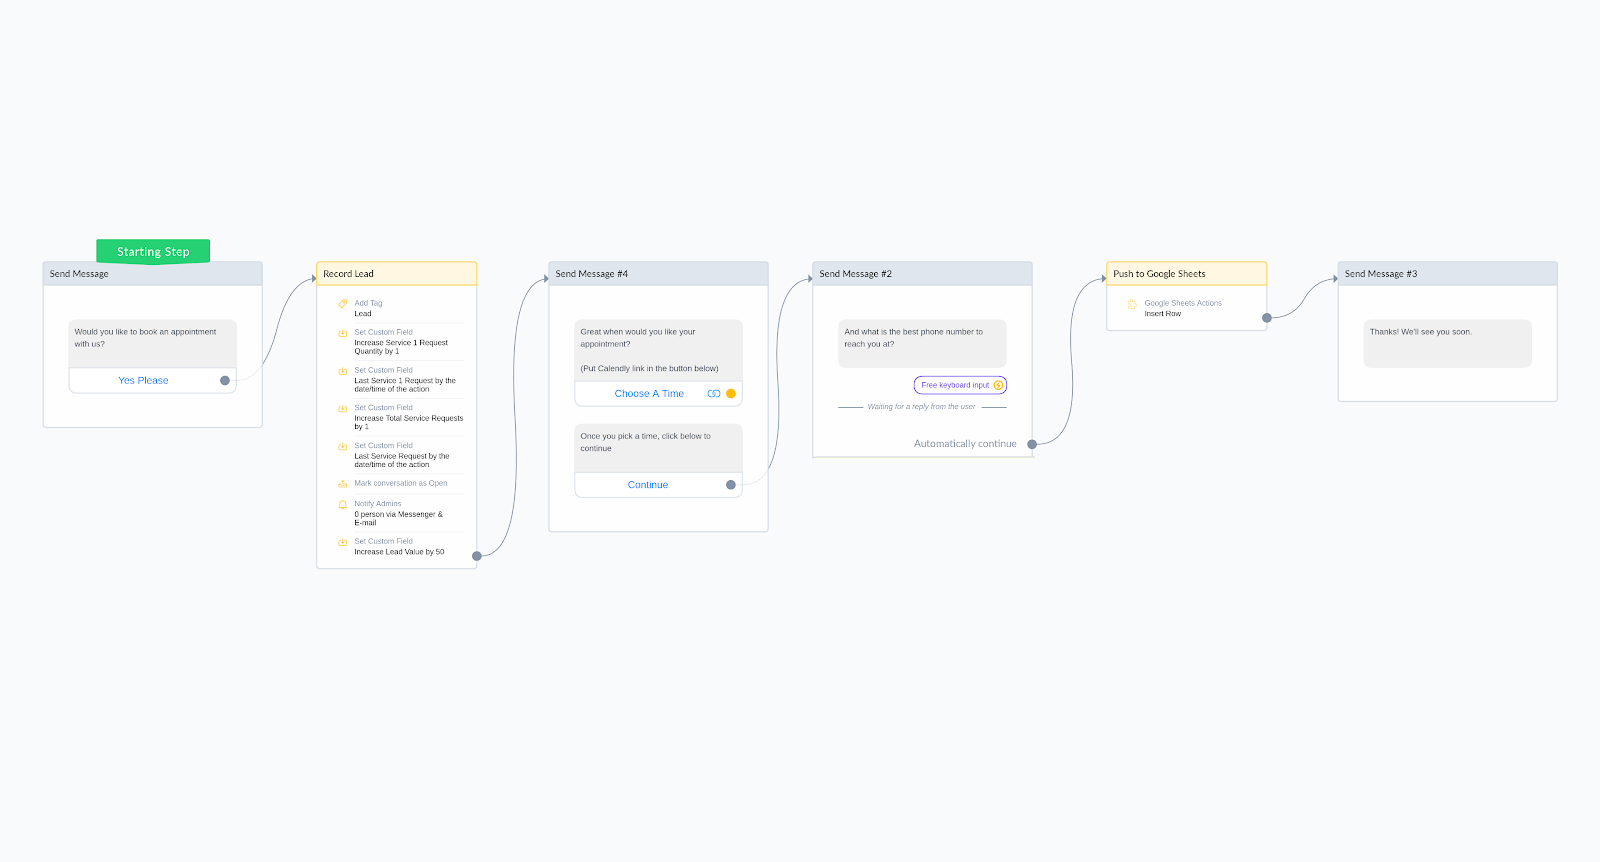 Conversion Tracking Flow in ManyChat